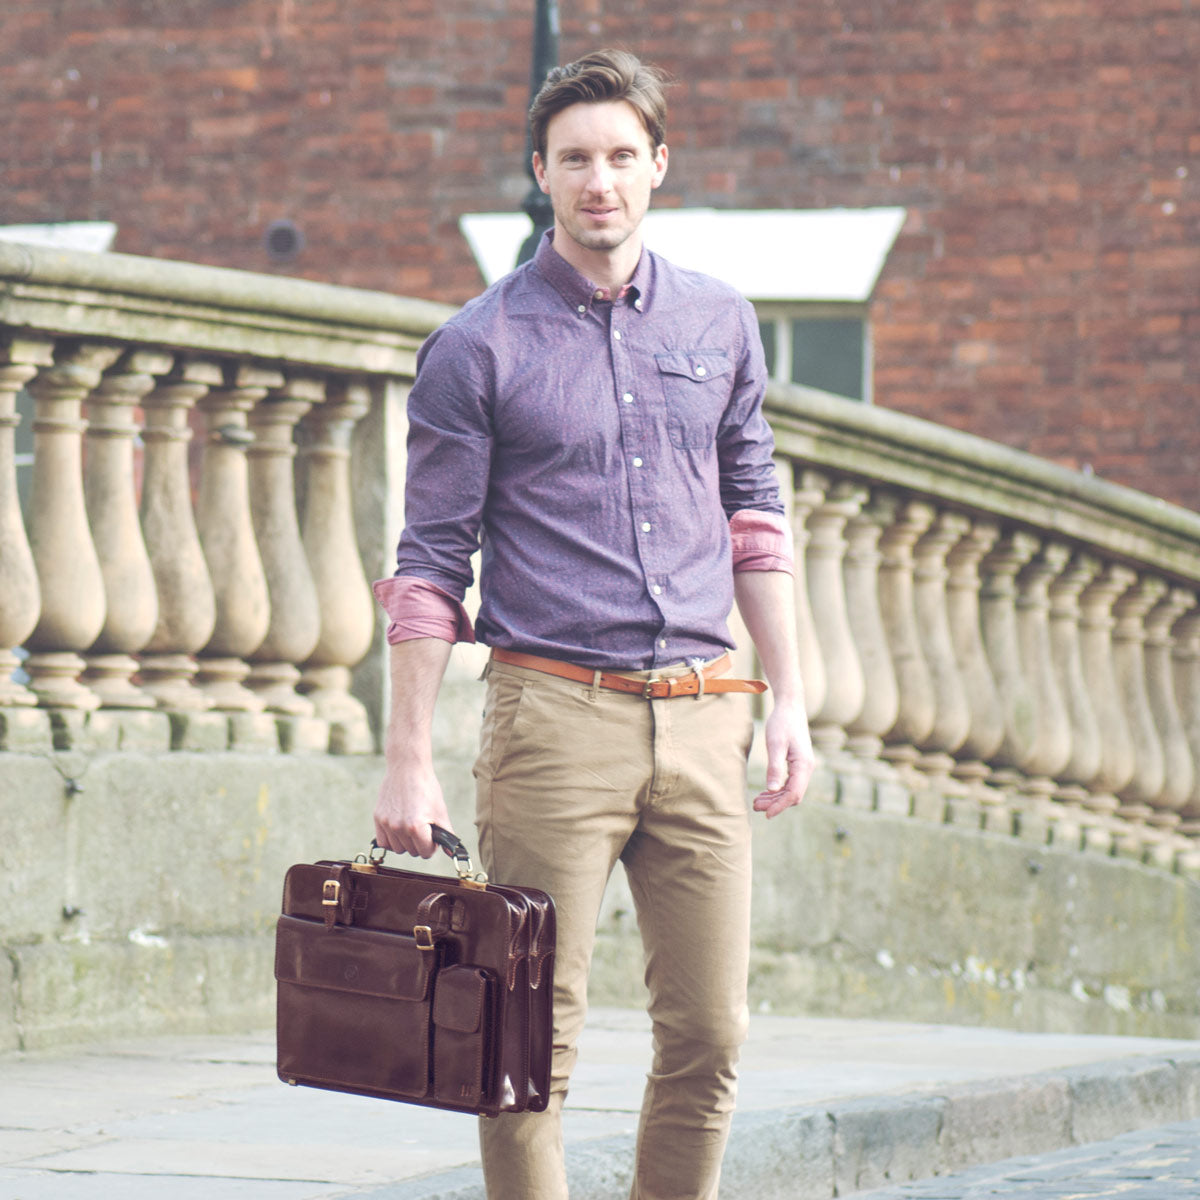 Image 8 of the 'Alanzo' Brown Veg-Tanned Leather Briefcase